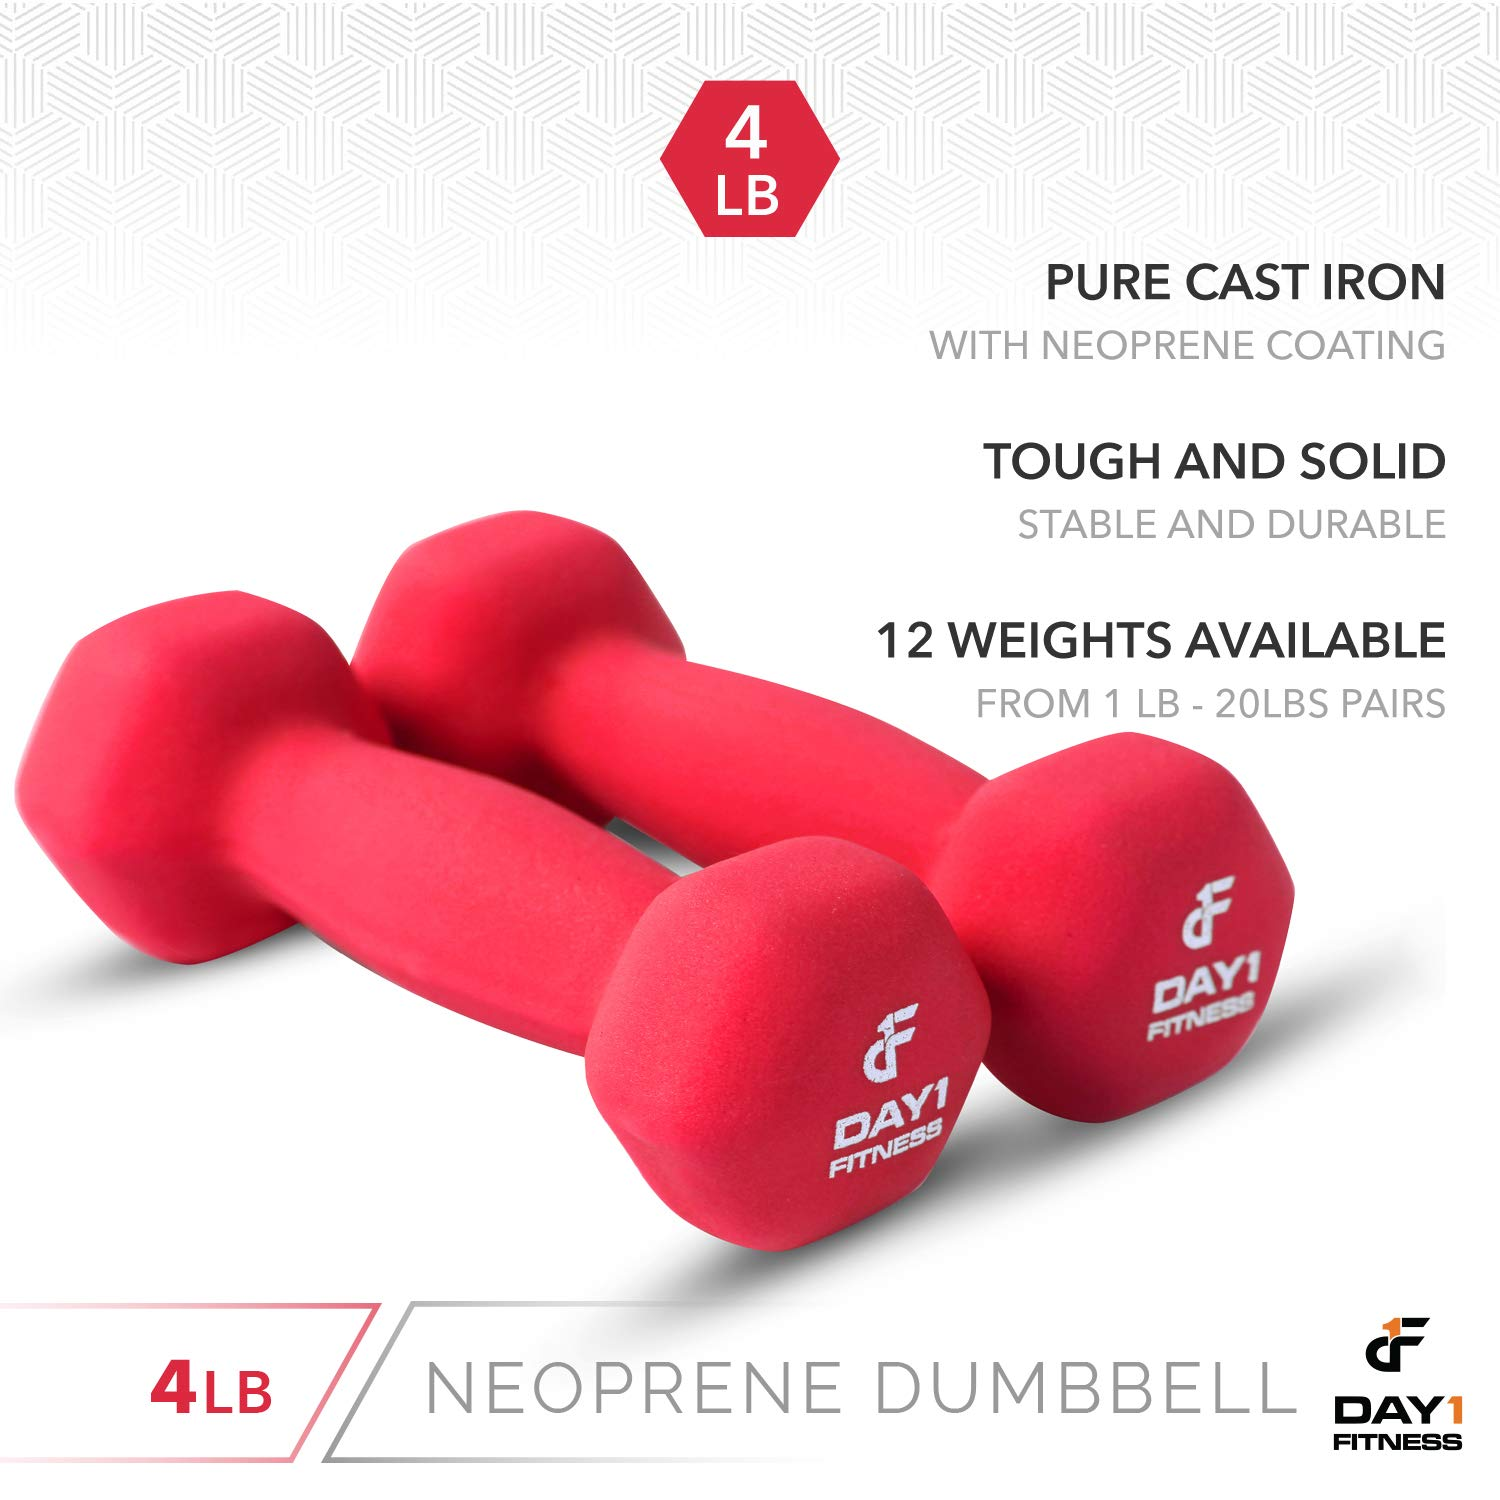 Strength Building Neoprene Dumbbell Pairs by Day 1 Fitness Color Coded Hexagon Shape Easy To Read Hand Weights for Muscle Toning 12 Sizes of Pairs Available Weight Loss 1-20 Pounds Non-Slip